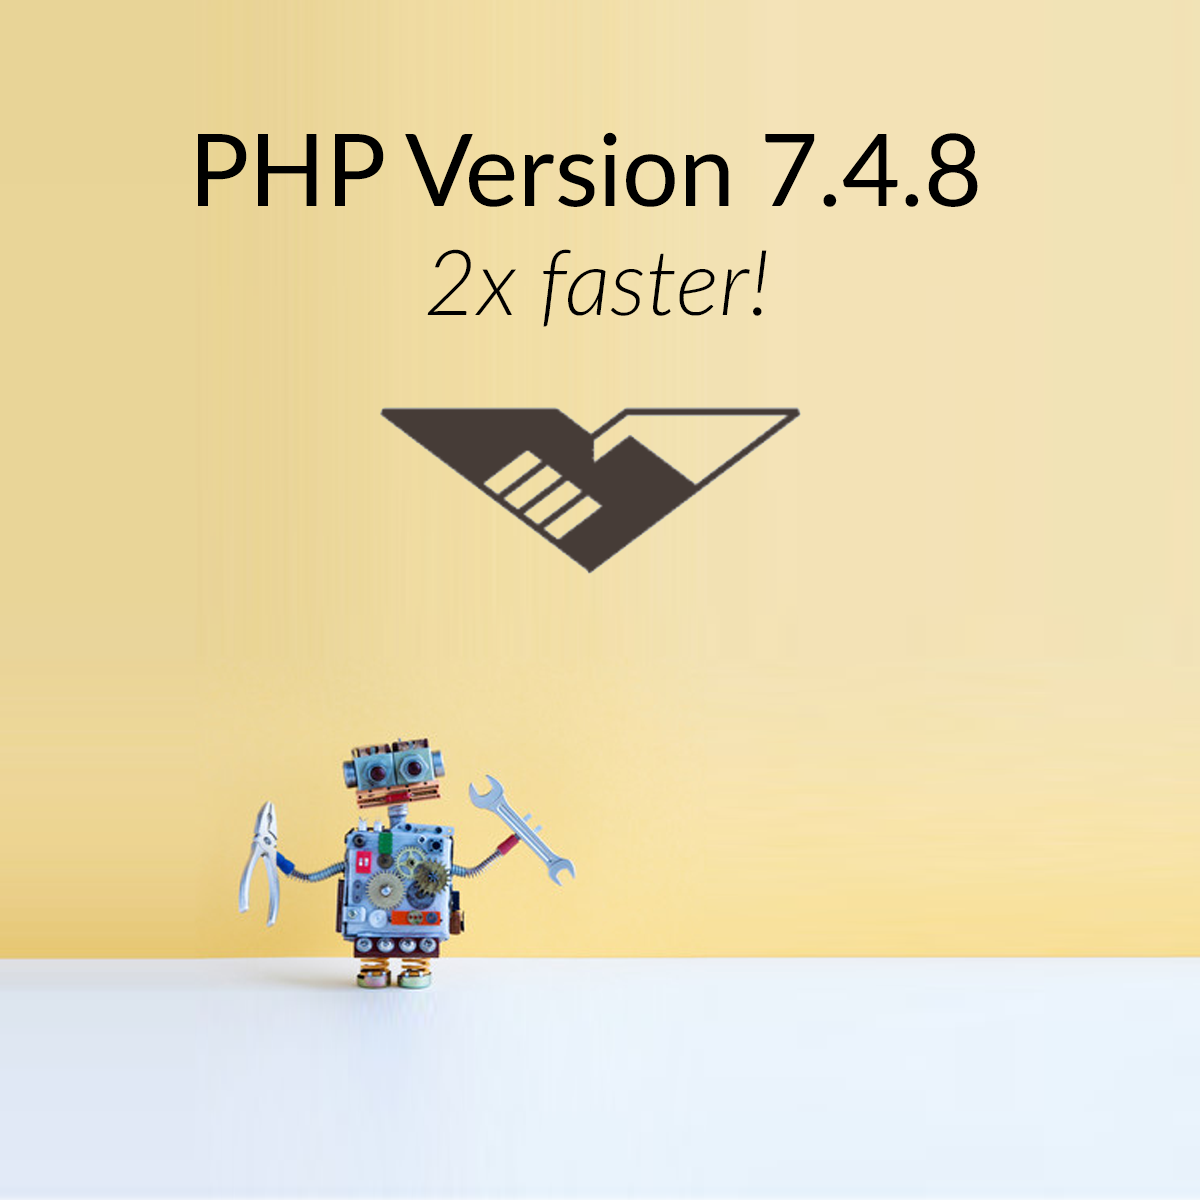 PHP Version 7.4.8 - 2x faster!